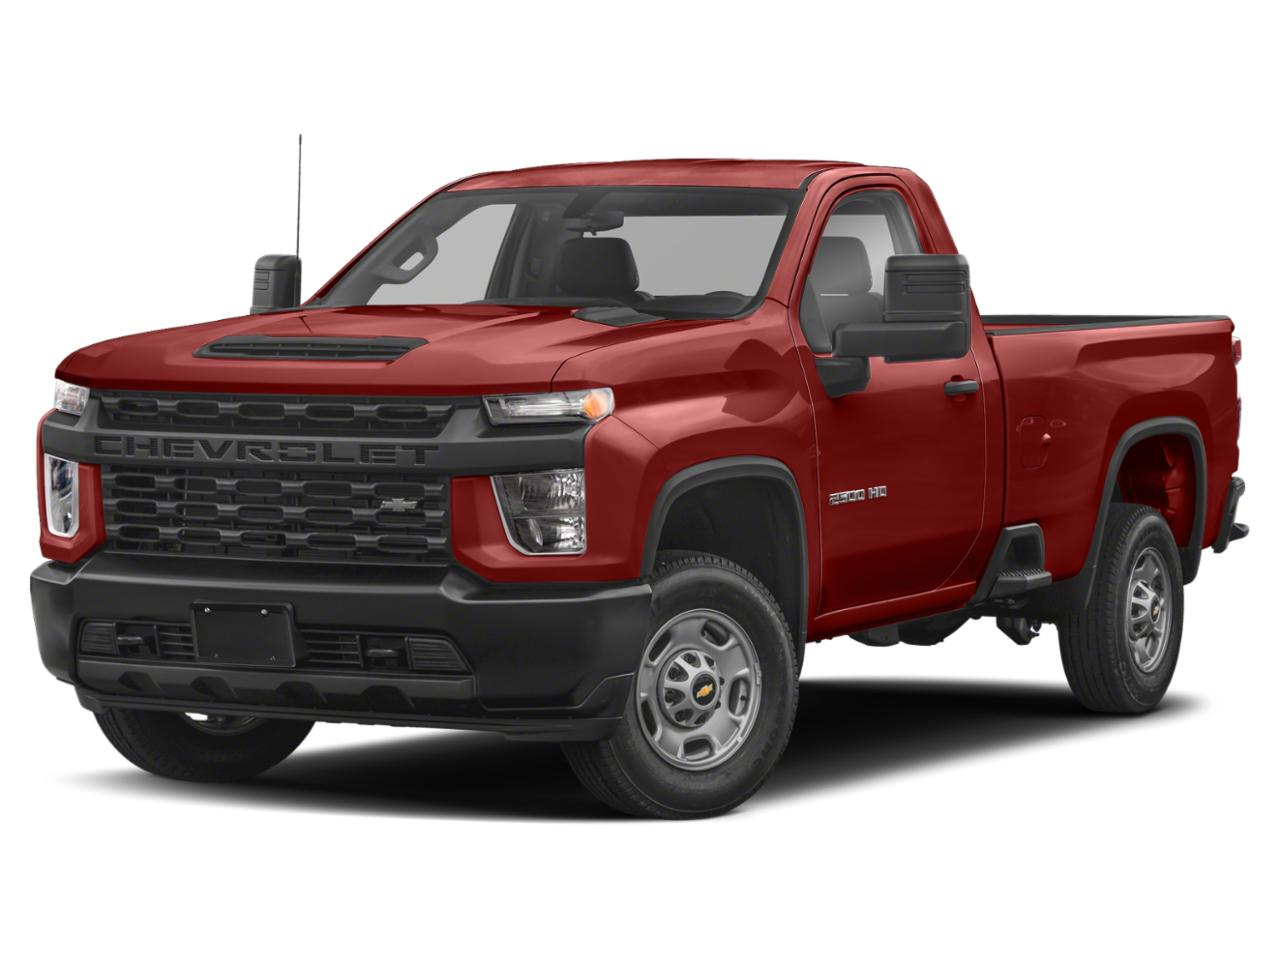 2020 Chevrolet Silverado 2500HD Vehicle Photo in South Portland, ME 04106